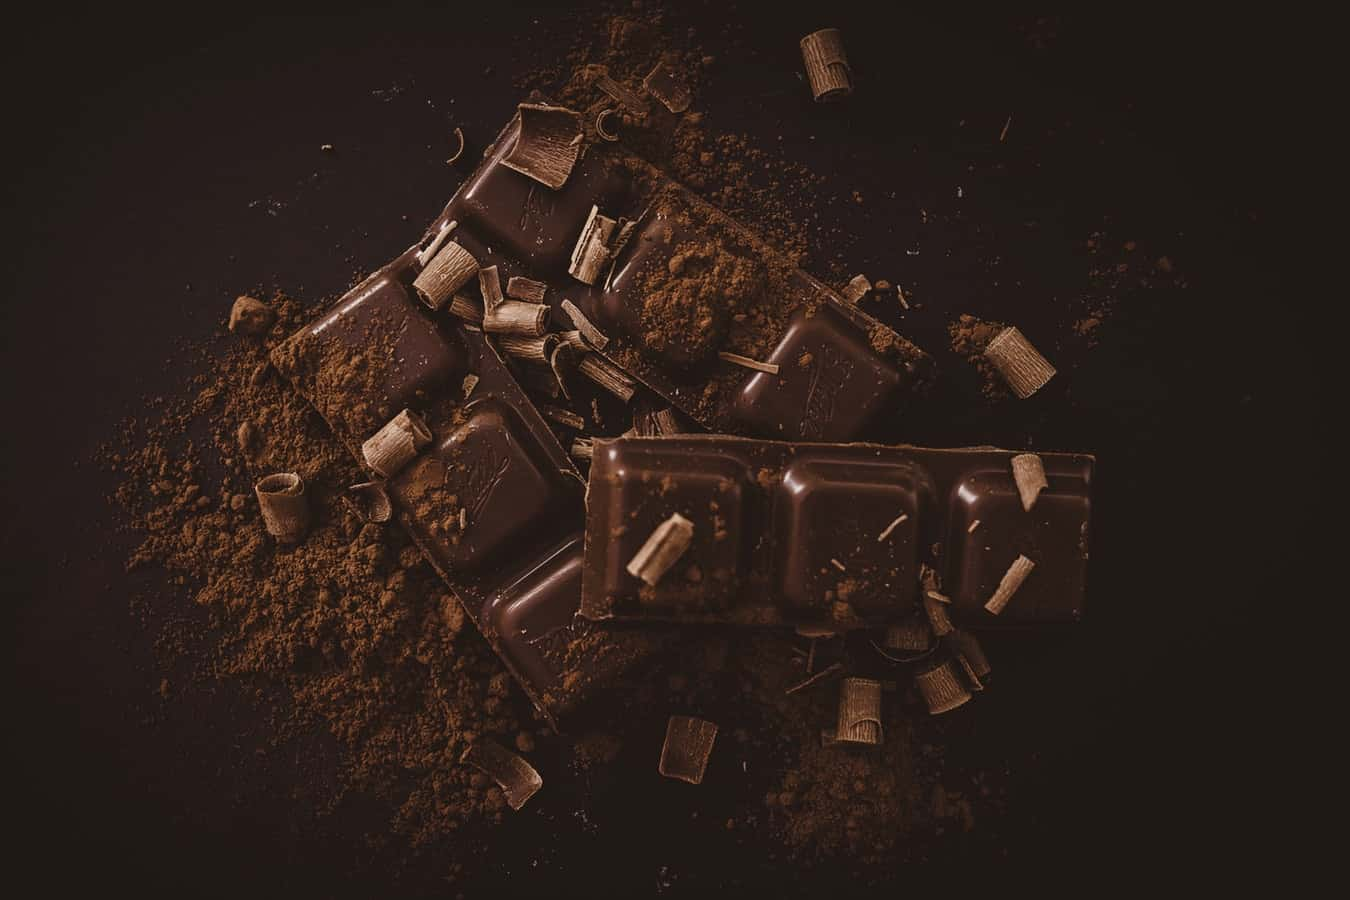 Chocolate pieces, which can be addictive and promote wellbeing